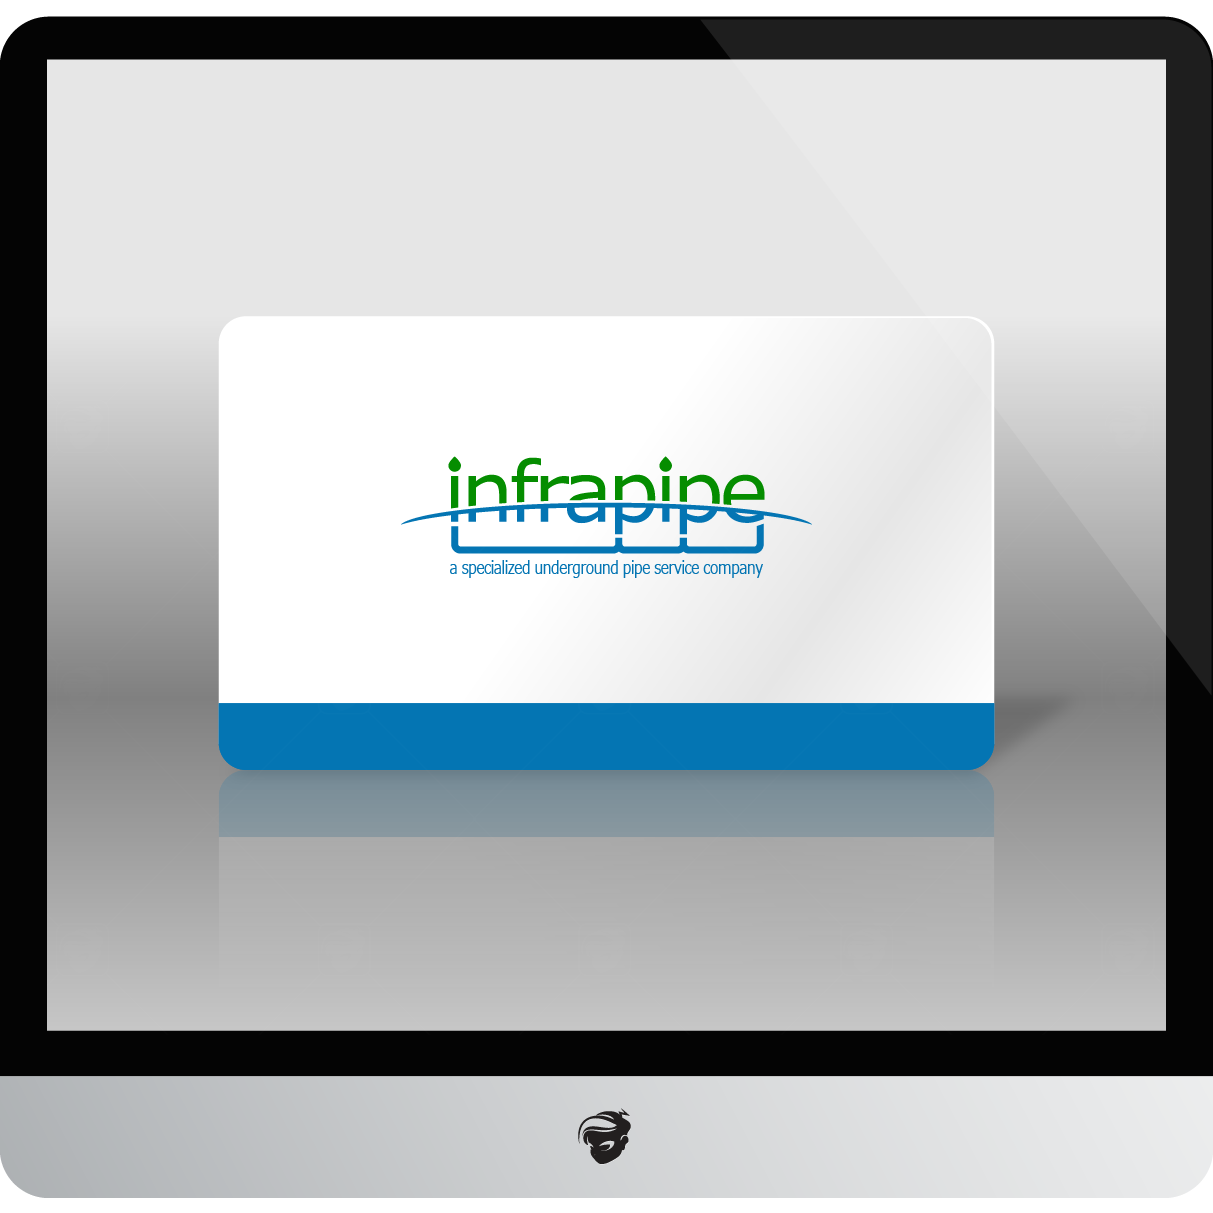 Logo Design by zesthar - Entry No. 174 in the Logo Design Contest Inspiring Logo Design for Infrapipe.